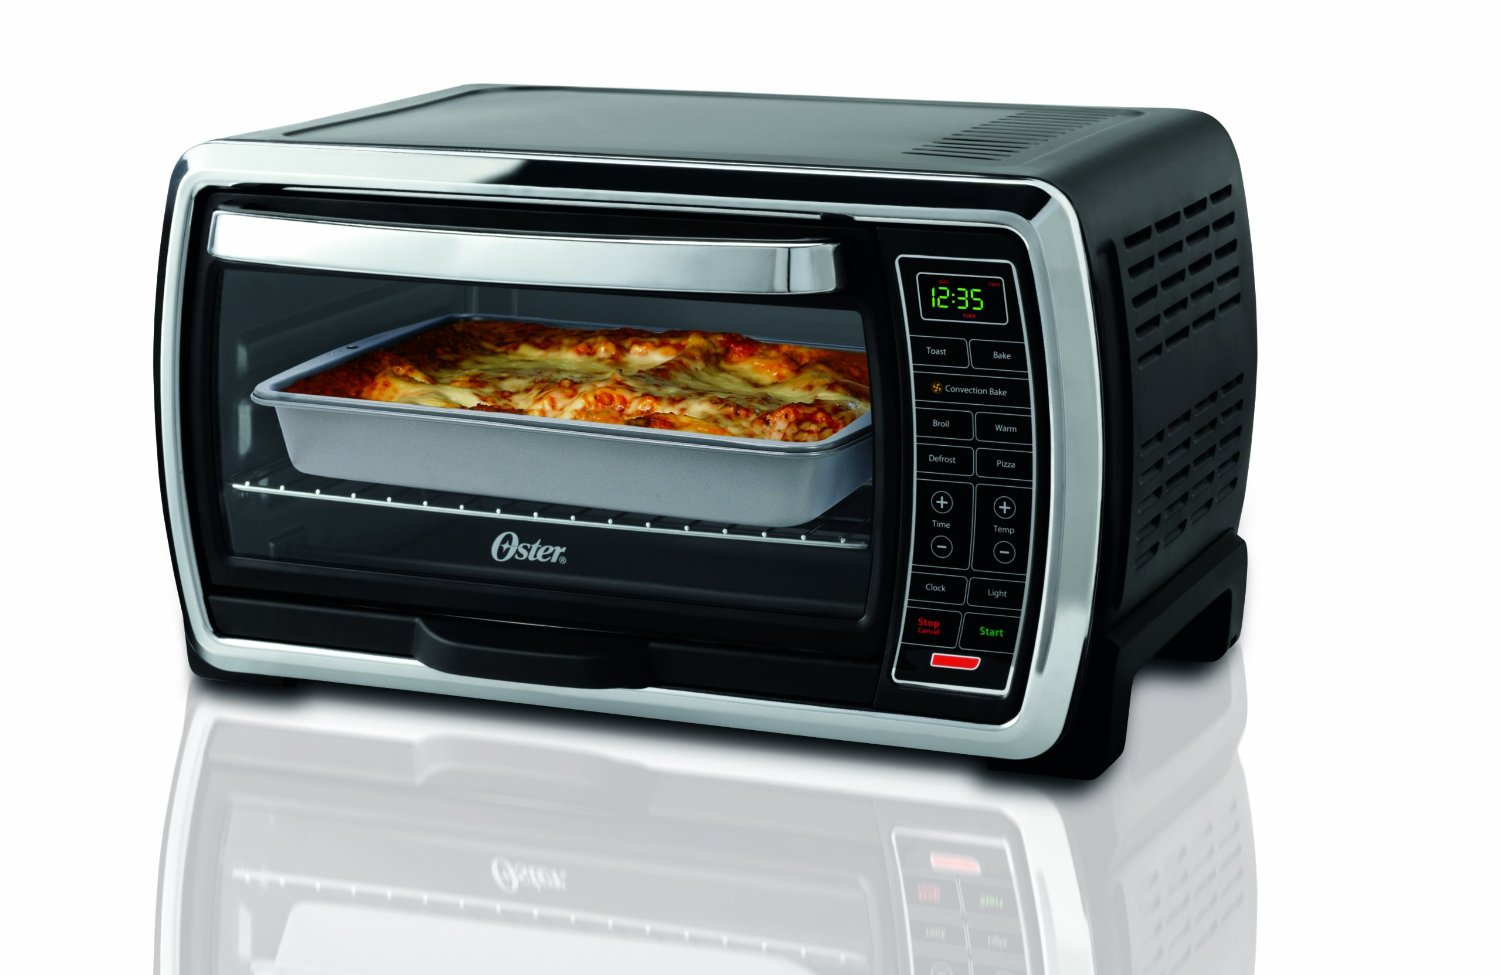 Top 10 Countertop Convection Oven Reviews The Best Of 2020